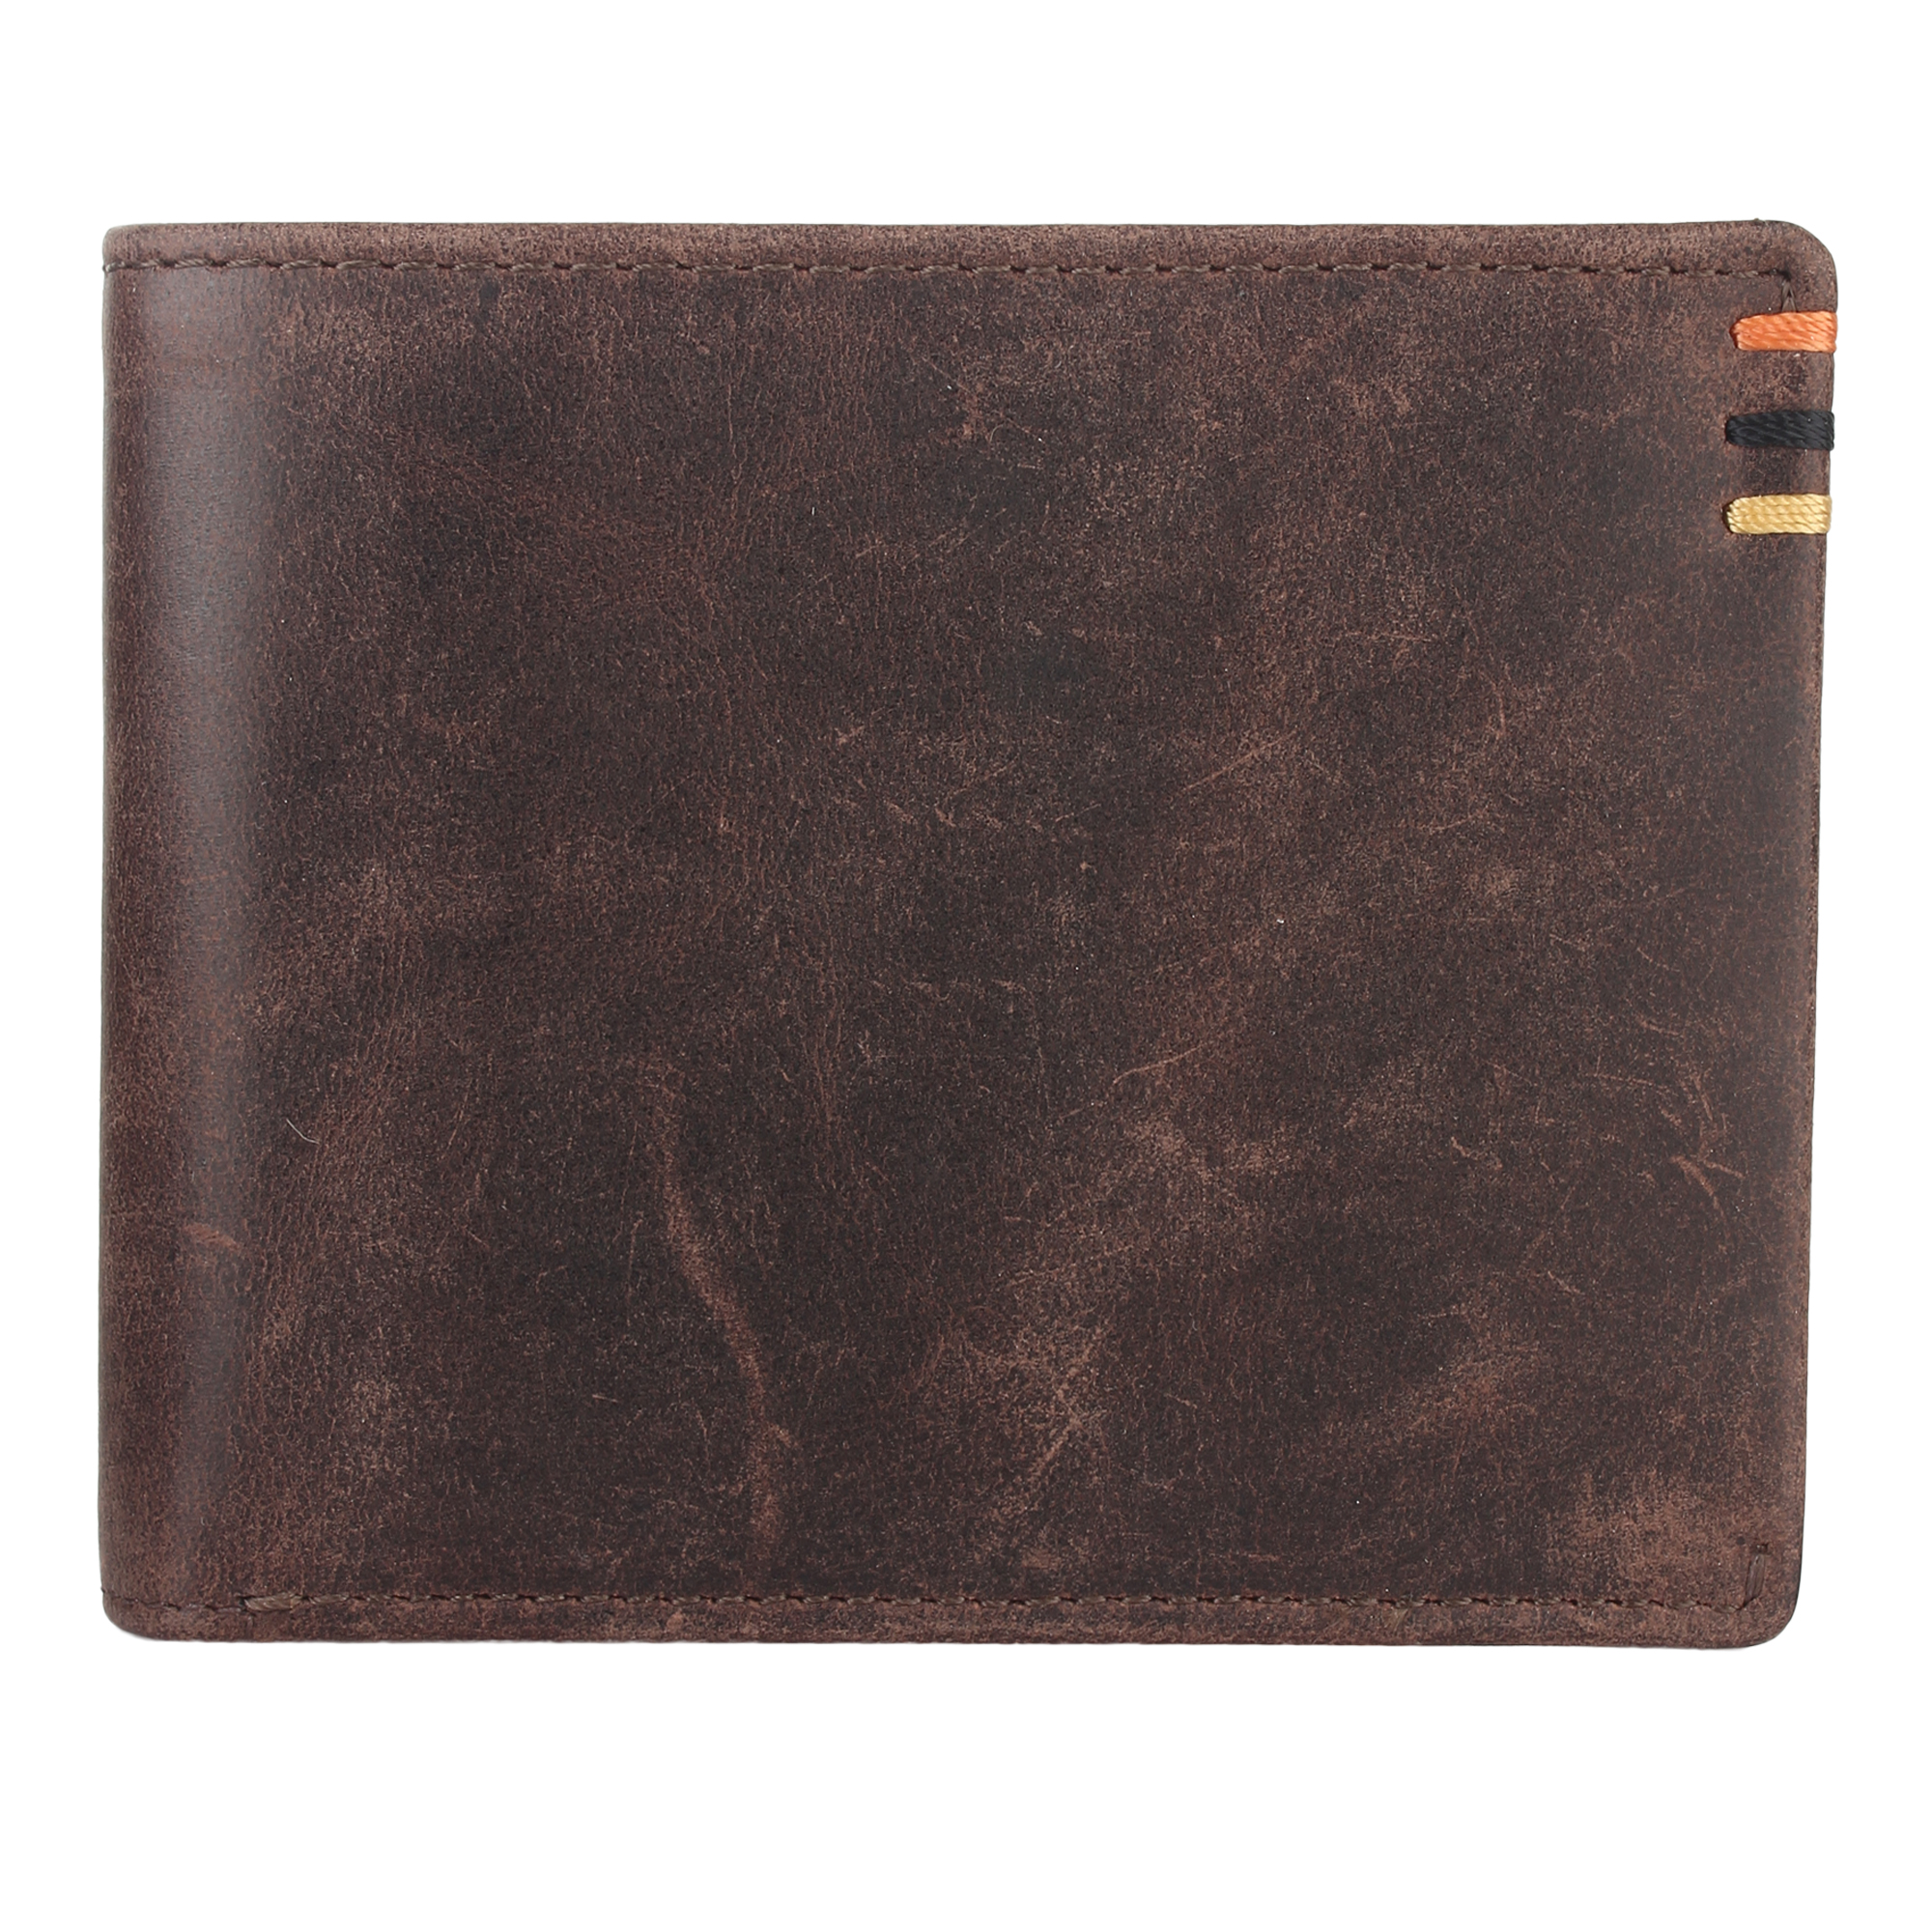 Leather Wallets Manufacturers in Florida, Leather Wallets Suppliers in Florida, Leather Wallets Wholesalers in Florida, Leather Wallets Traders in Florida, custom leather wallet manufacturers in Florida, Leathe